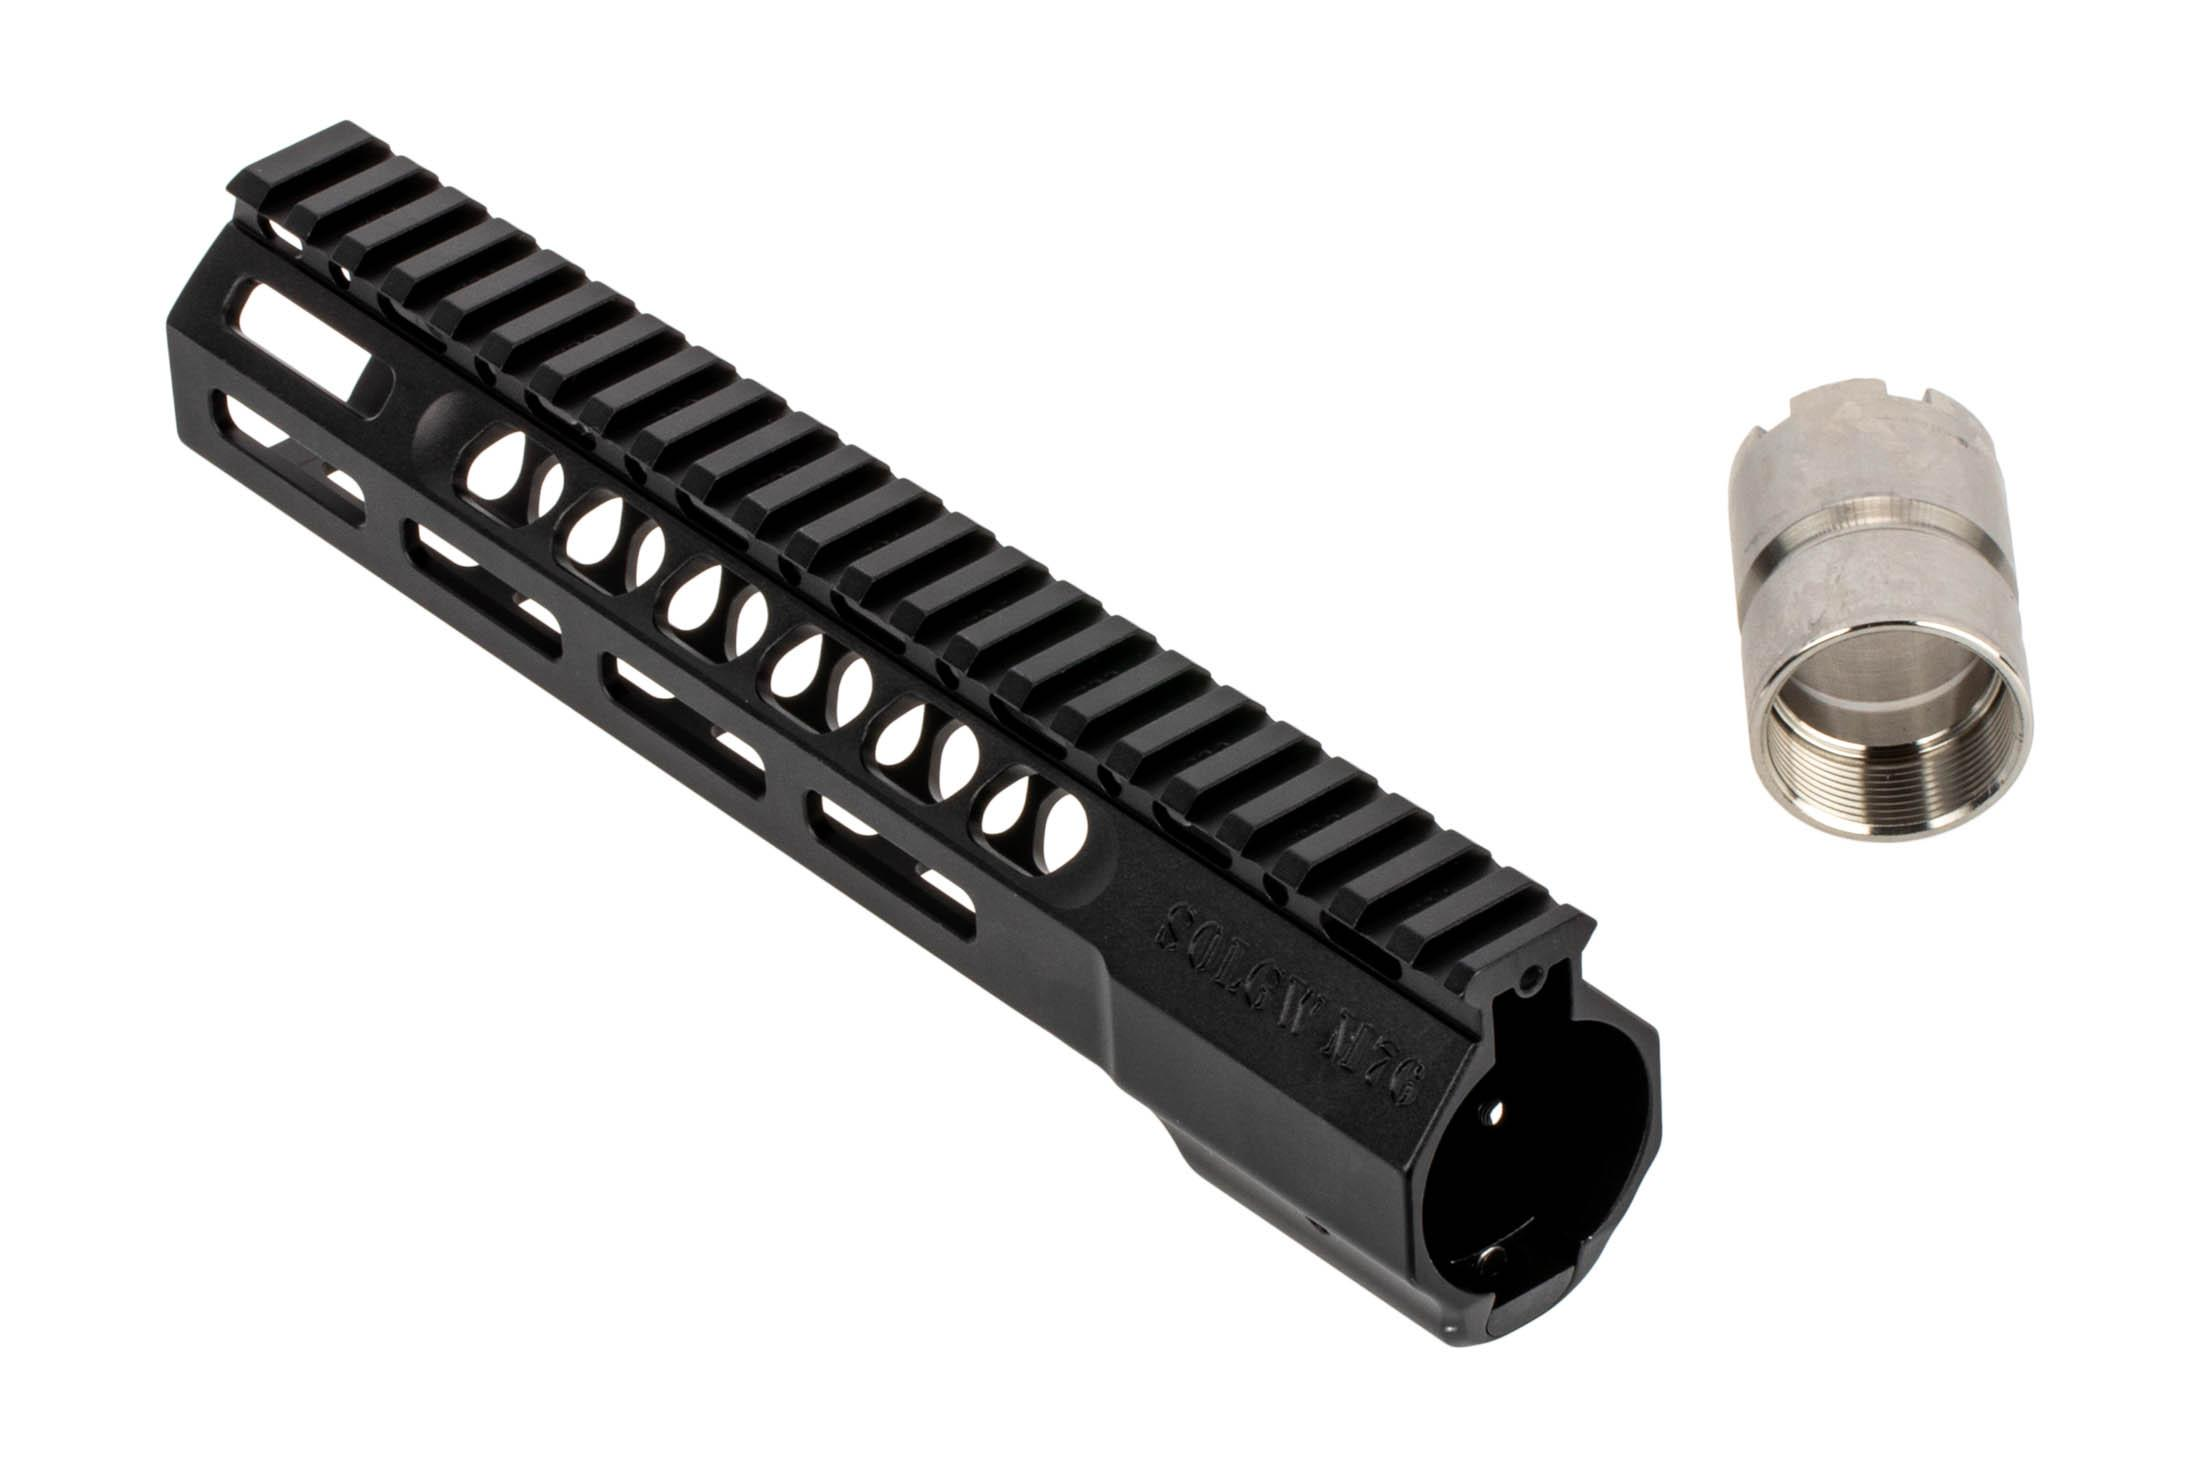 The Sons of Liberty Gun Works M76 free float handguard comes with a 4140 steel barrel nut